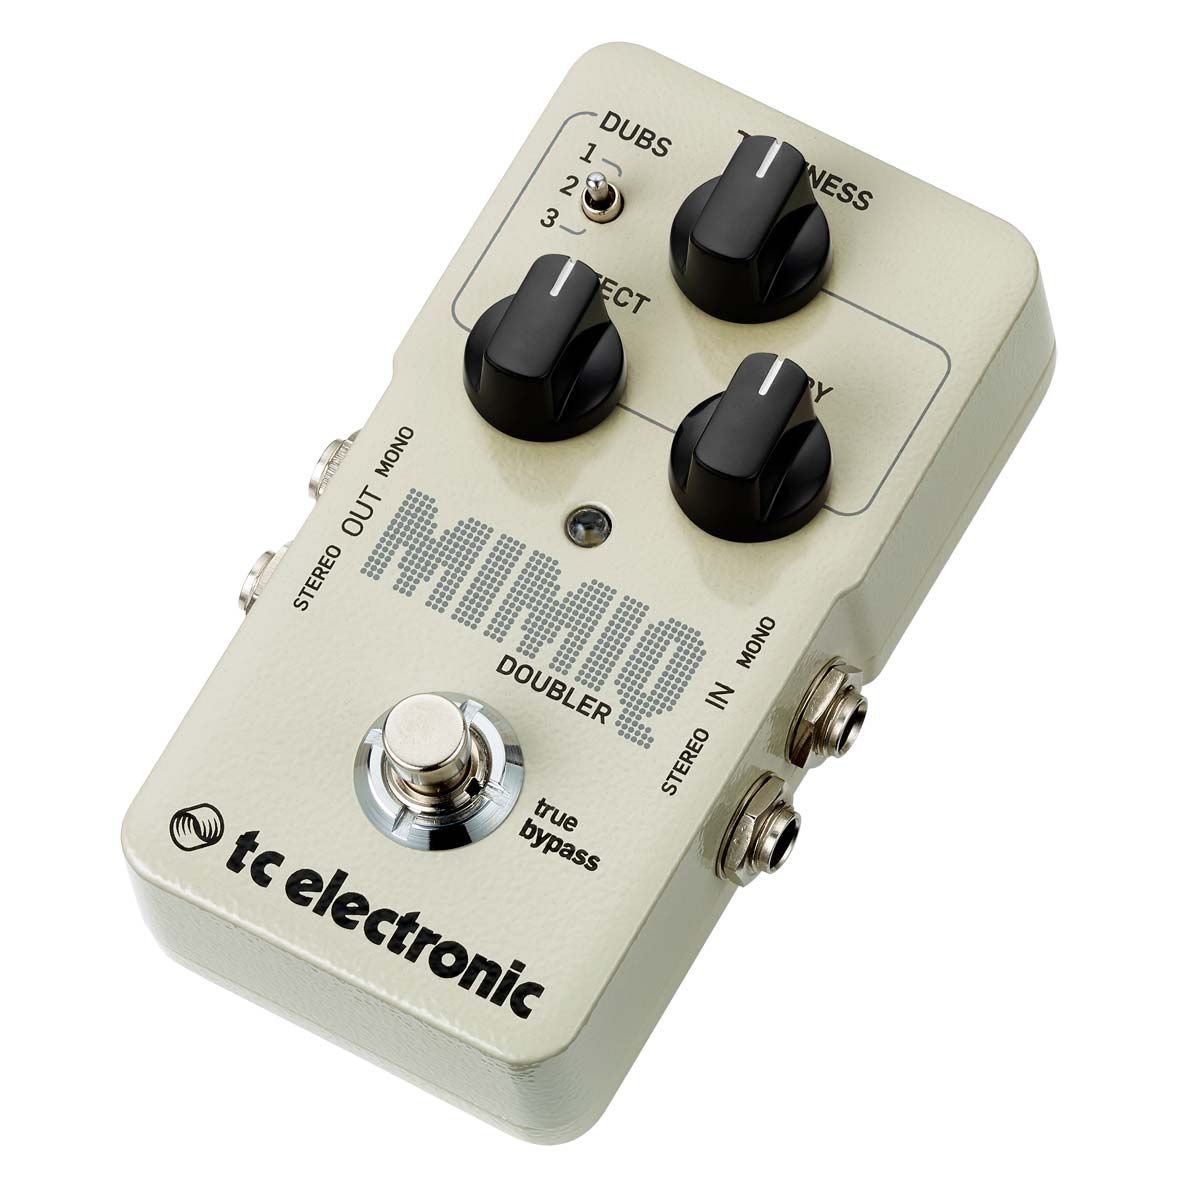 TC Electronic Mimiq Double guitar-effekt-pedal